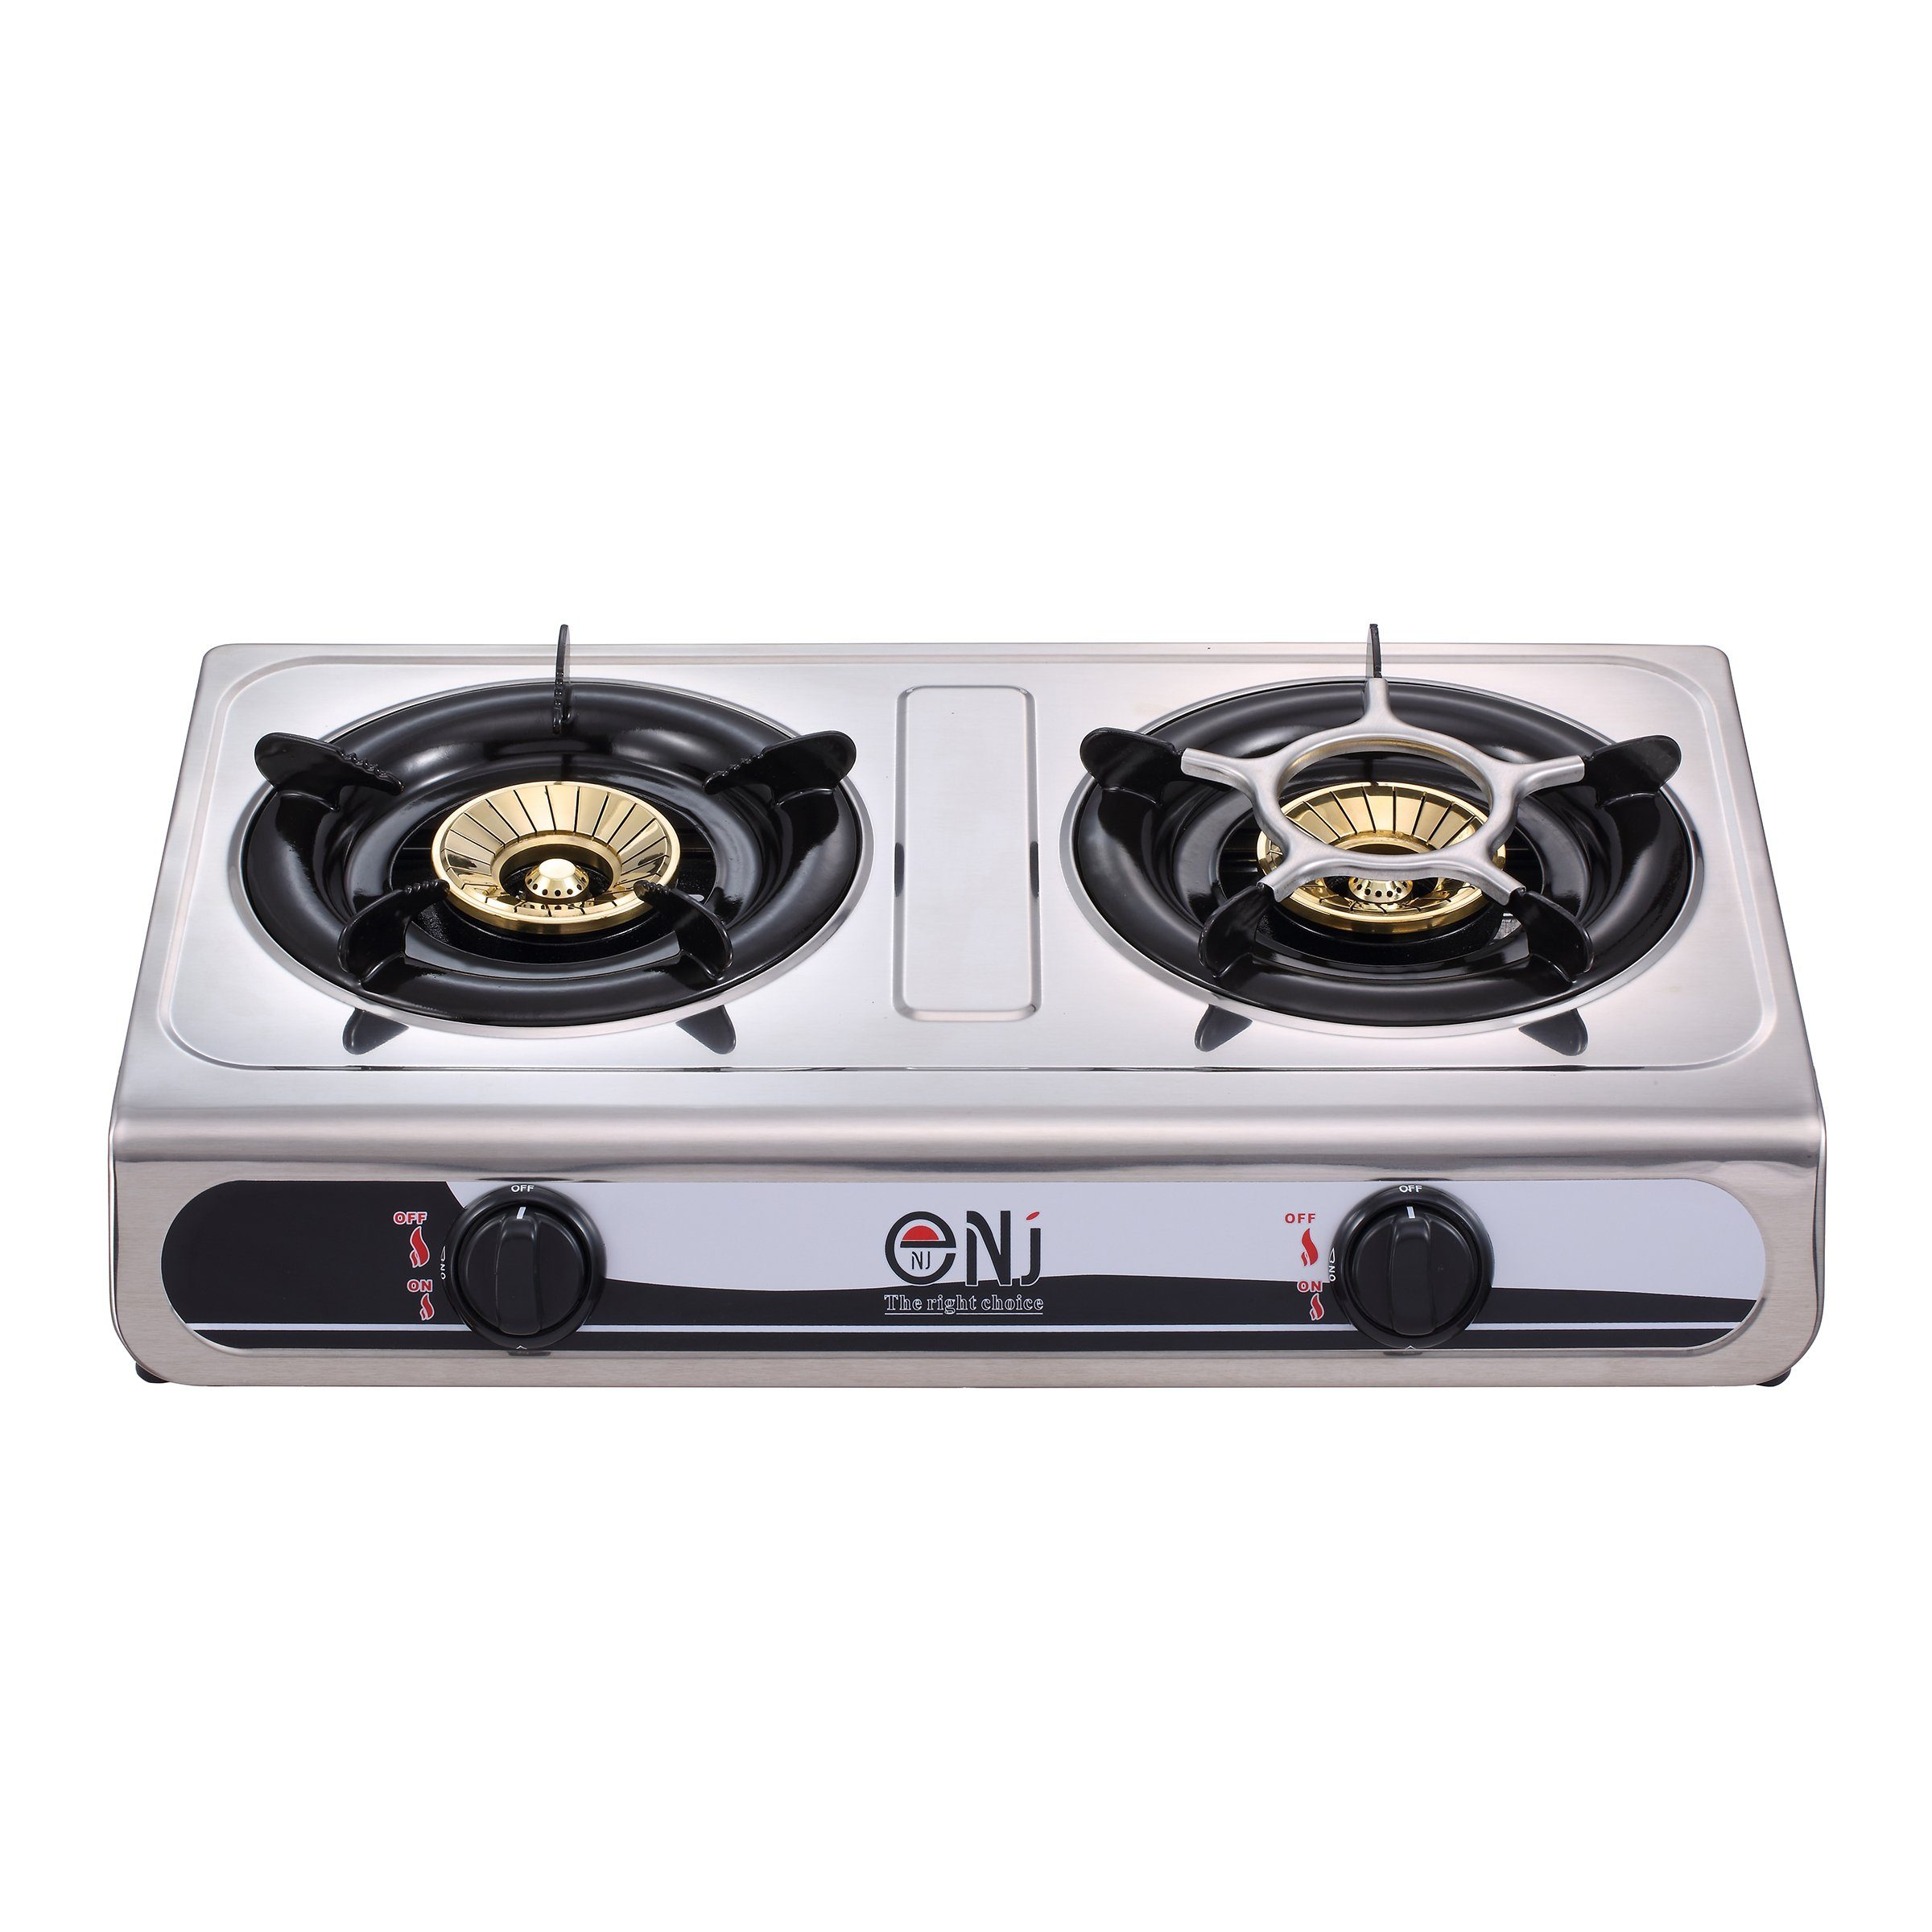 NJ NGB 60 Gas Stove 2 Burner Stainless Steel 60cm Gas Cooker For Outdoor